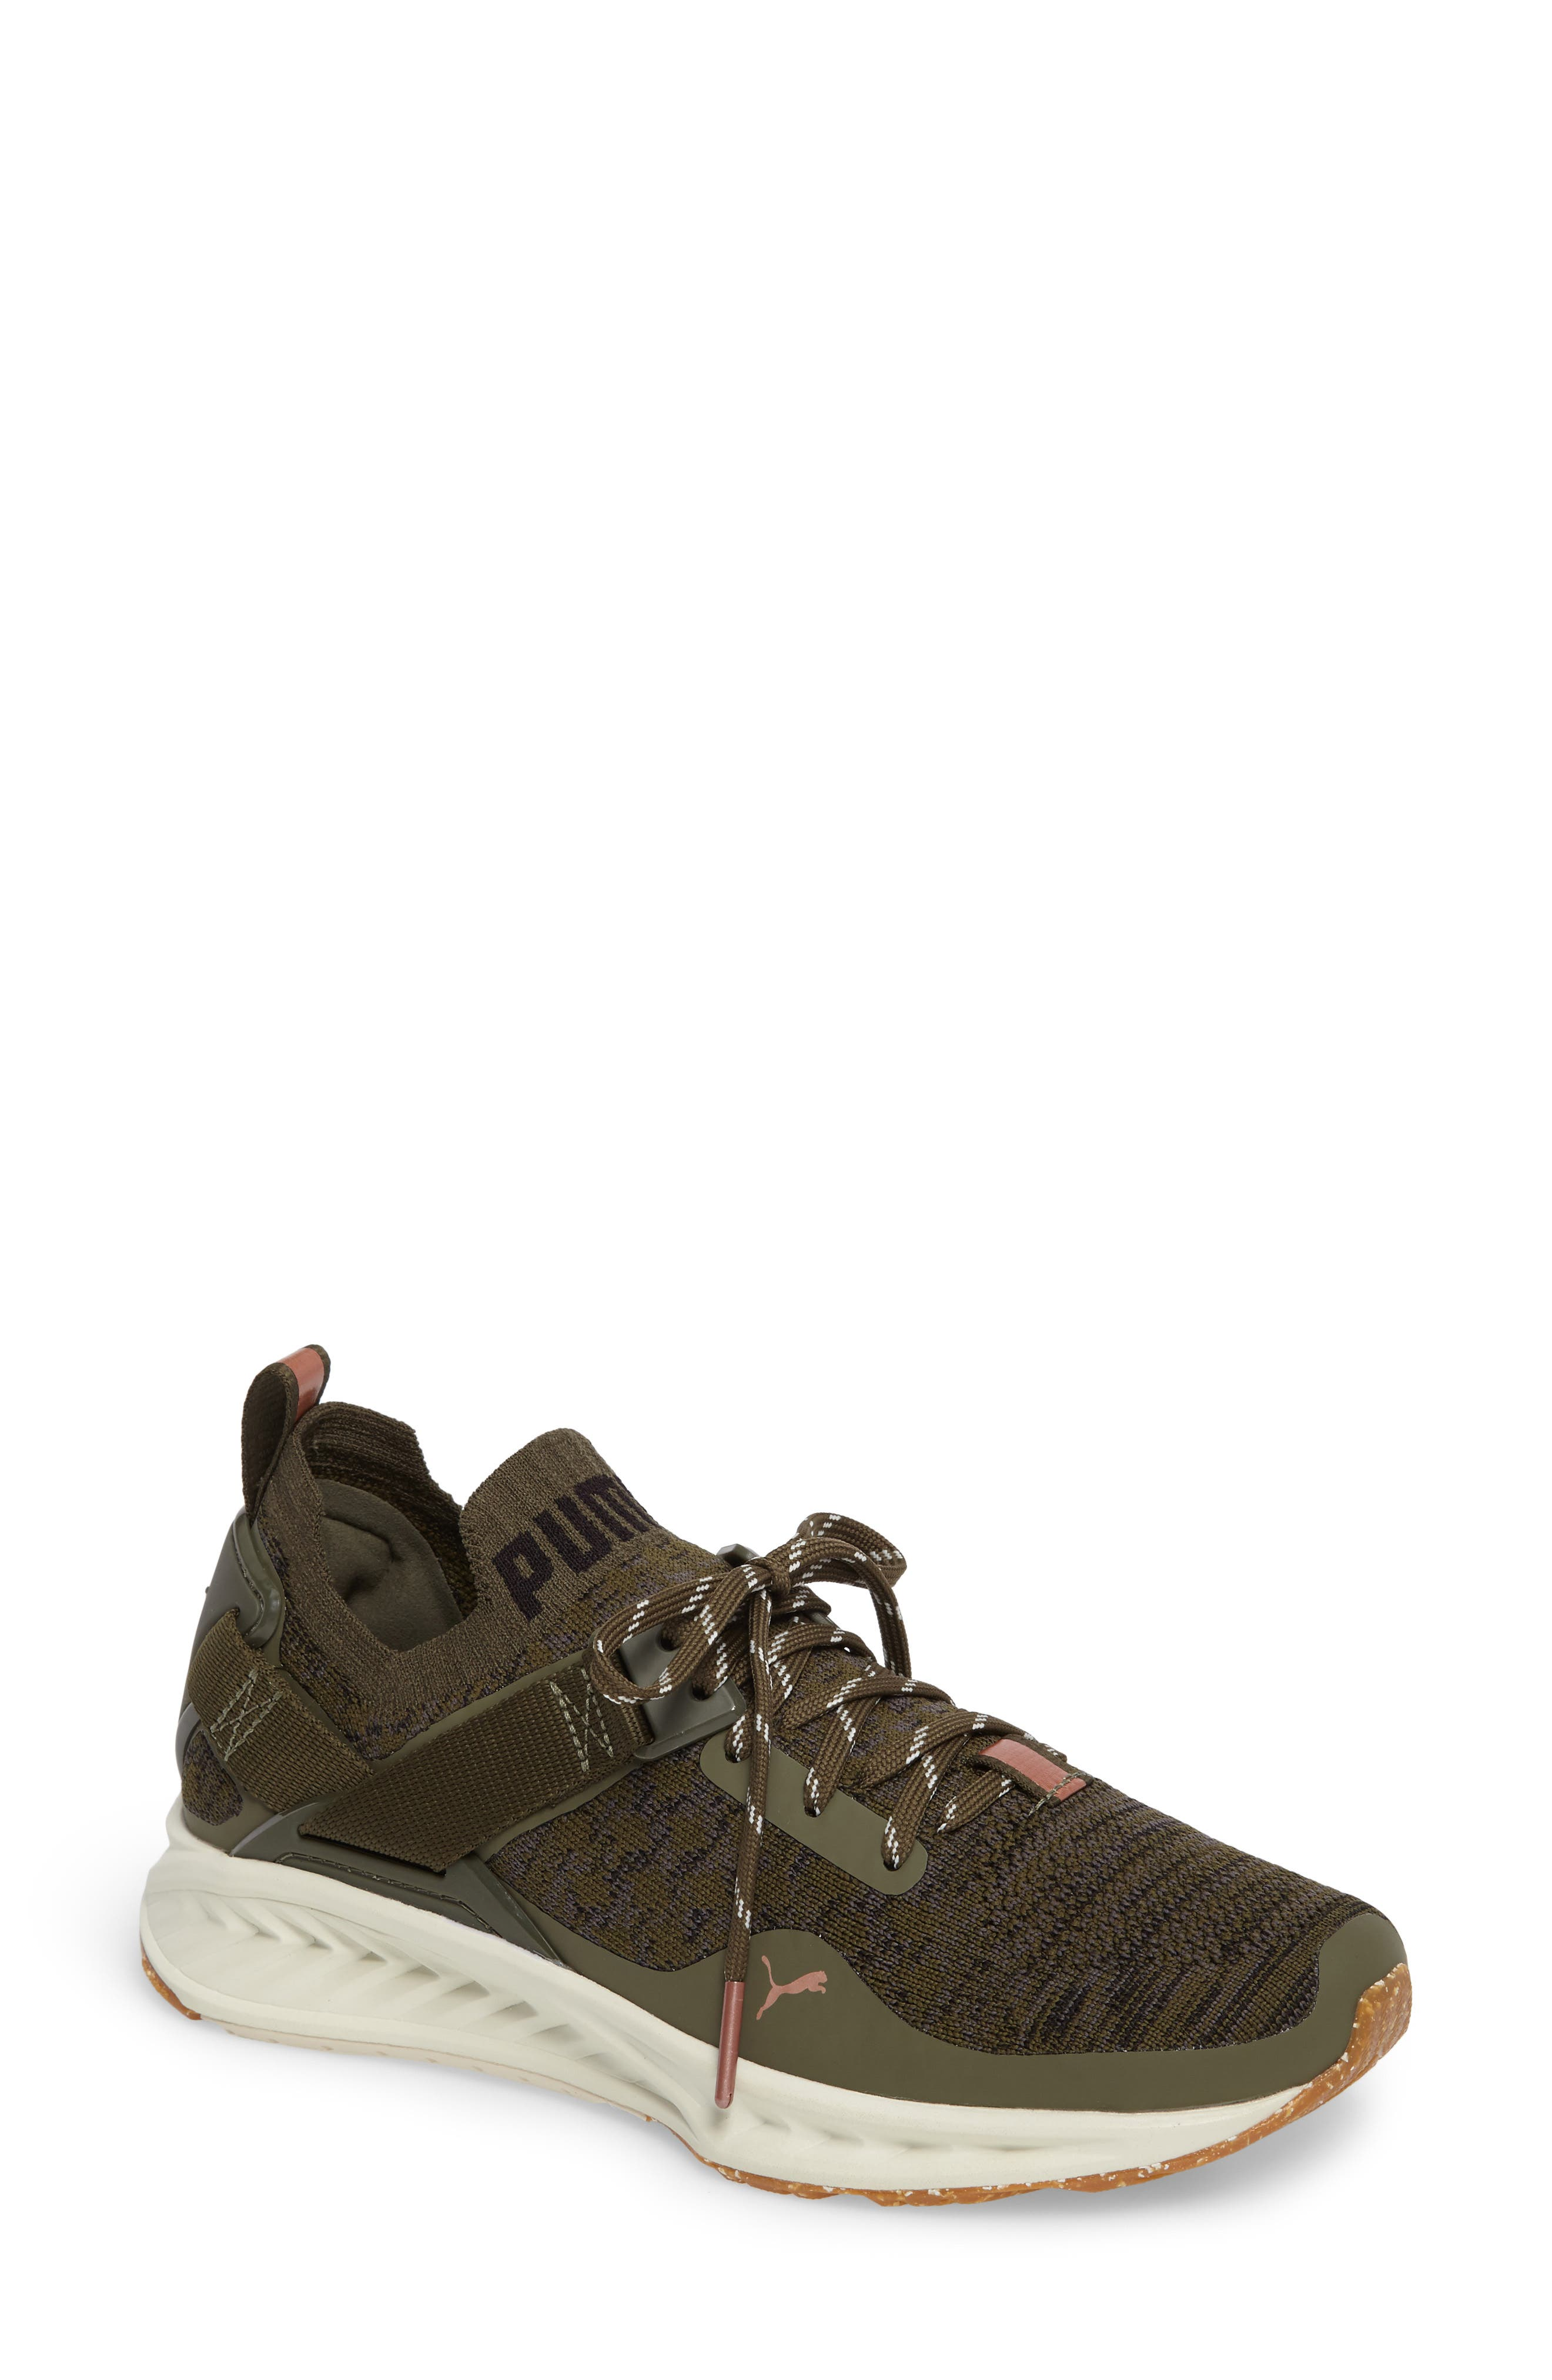 IGNITE evoKNIT Low Sneaker,                         Main,                         color, Olive/ Black/ Quiet Shade